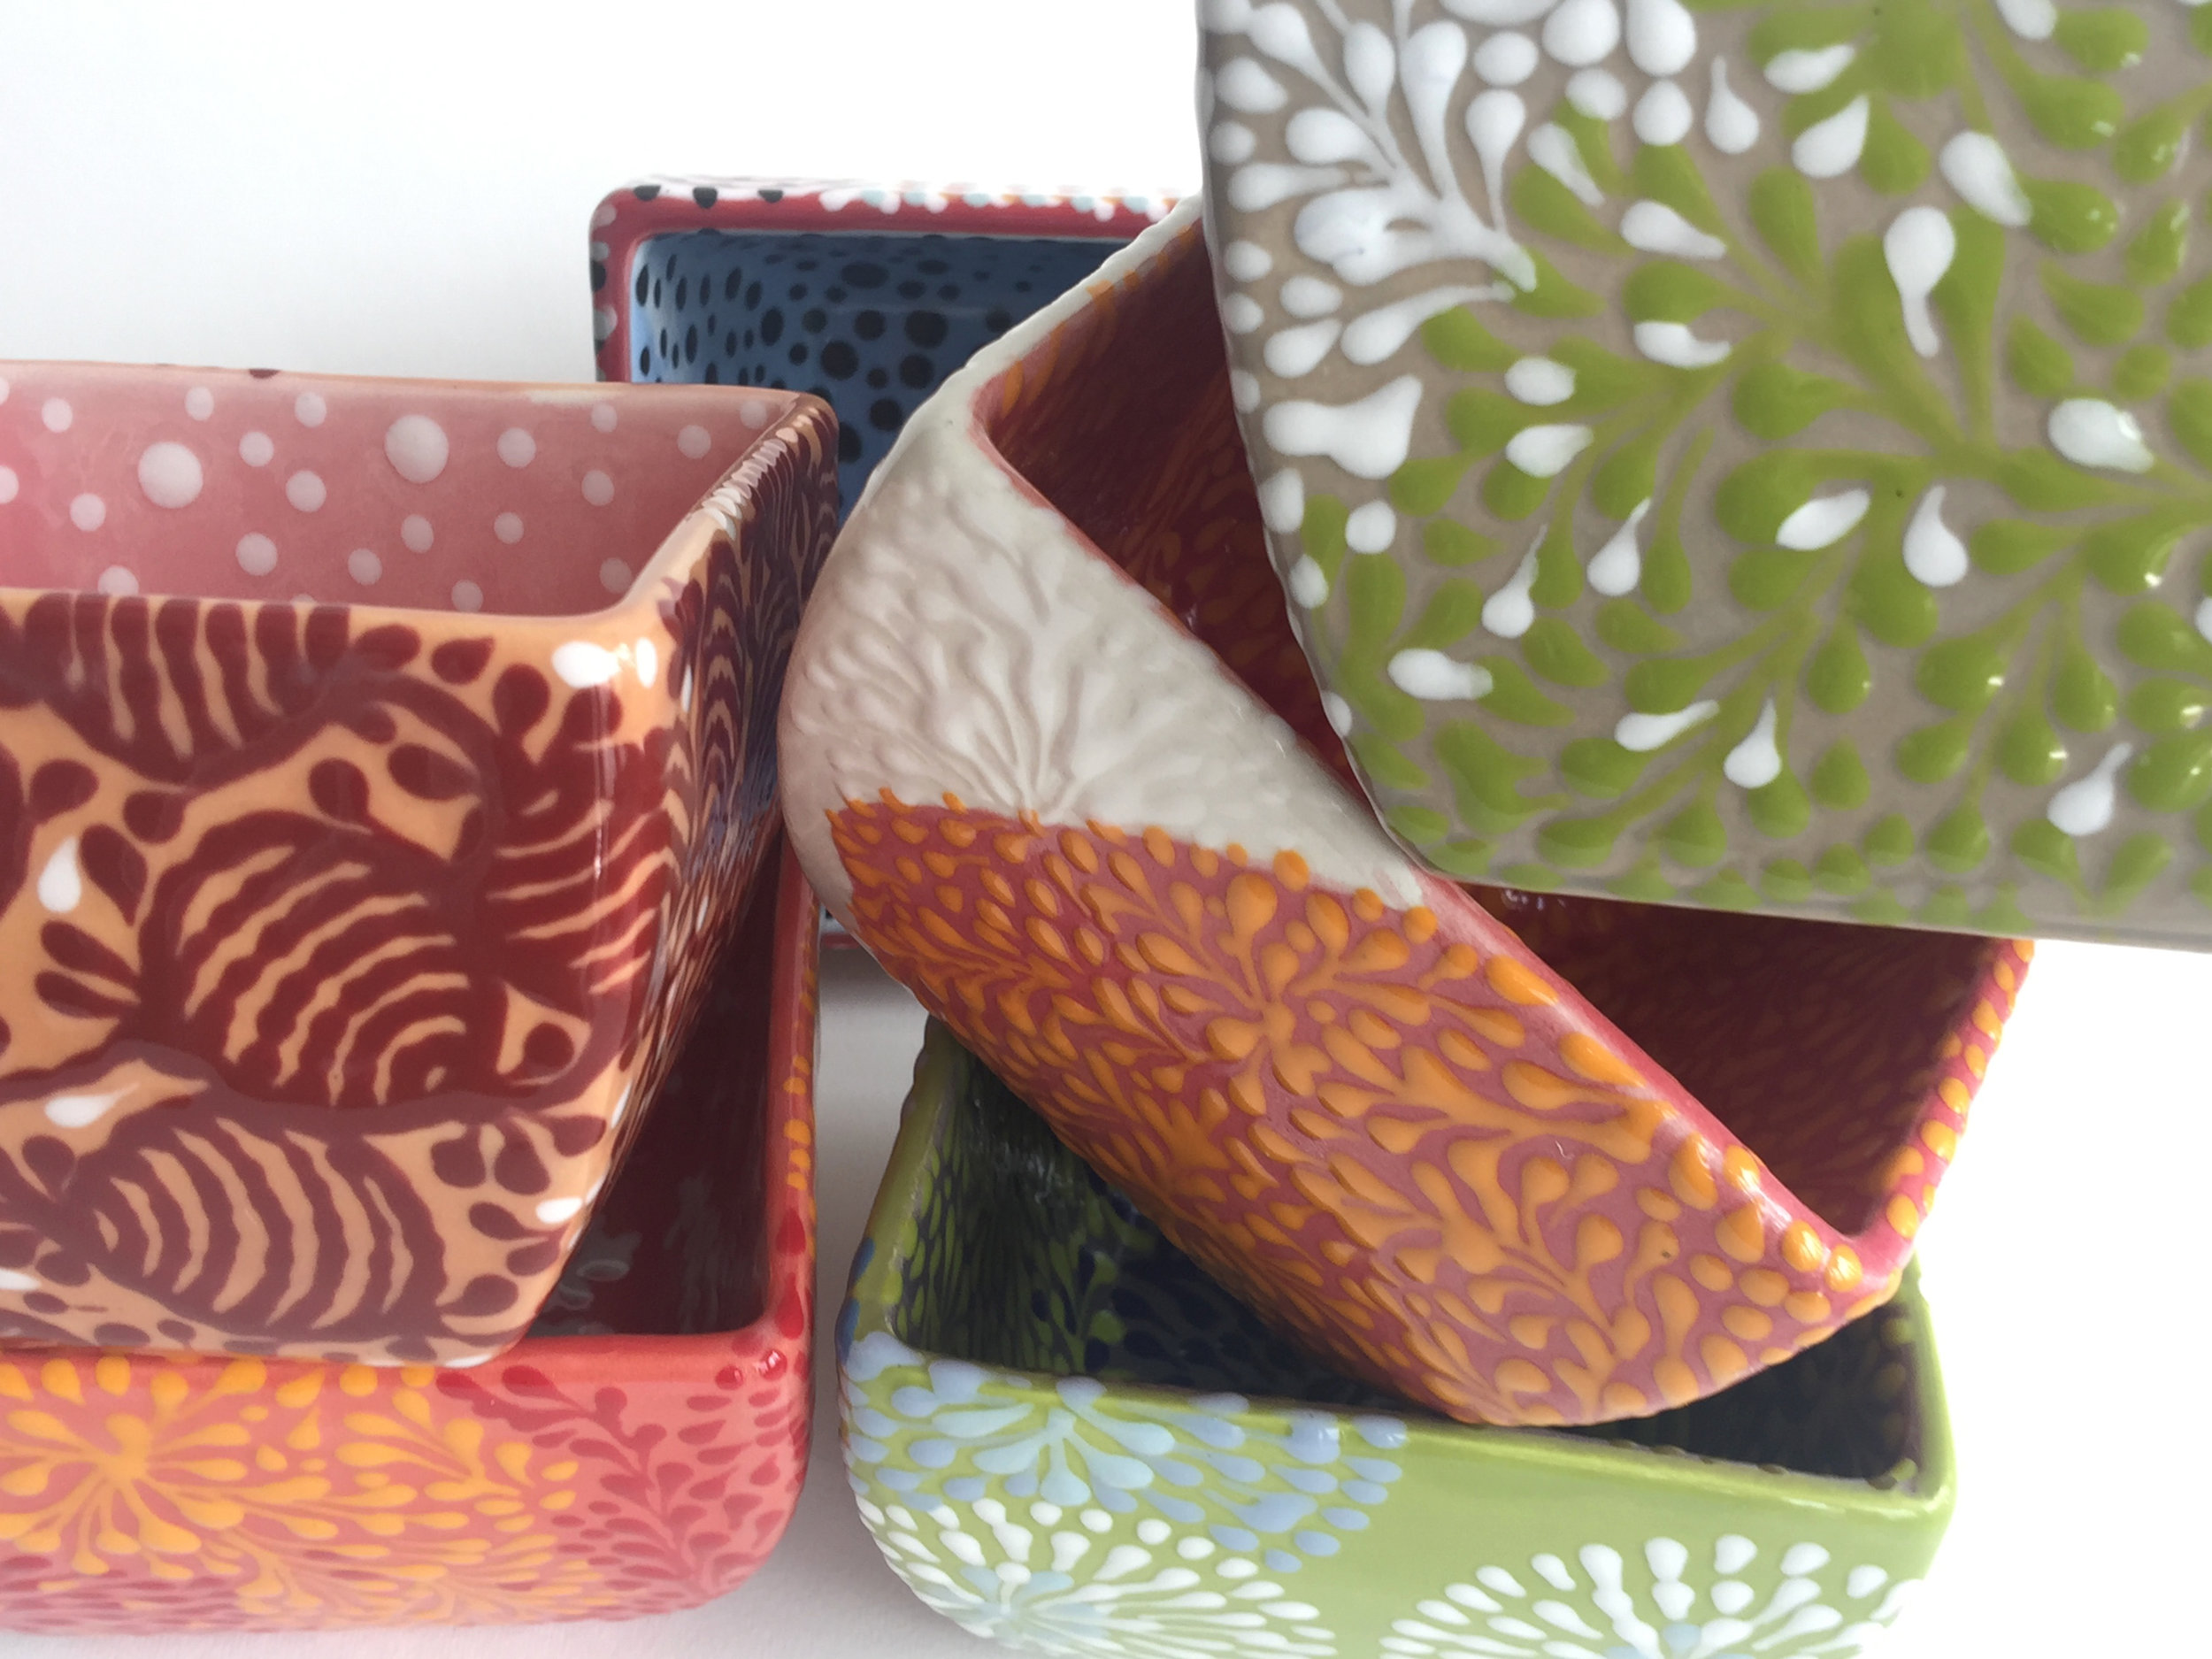 ASSORTMENT OF SQUARE BOWLS